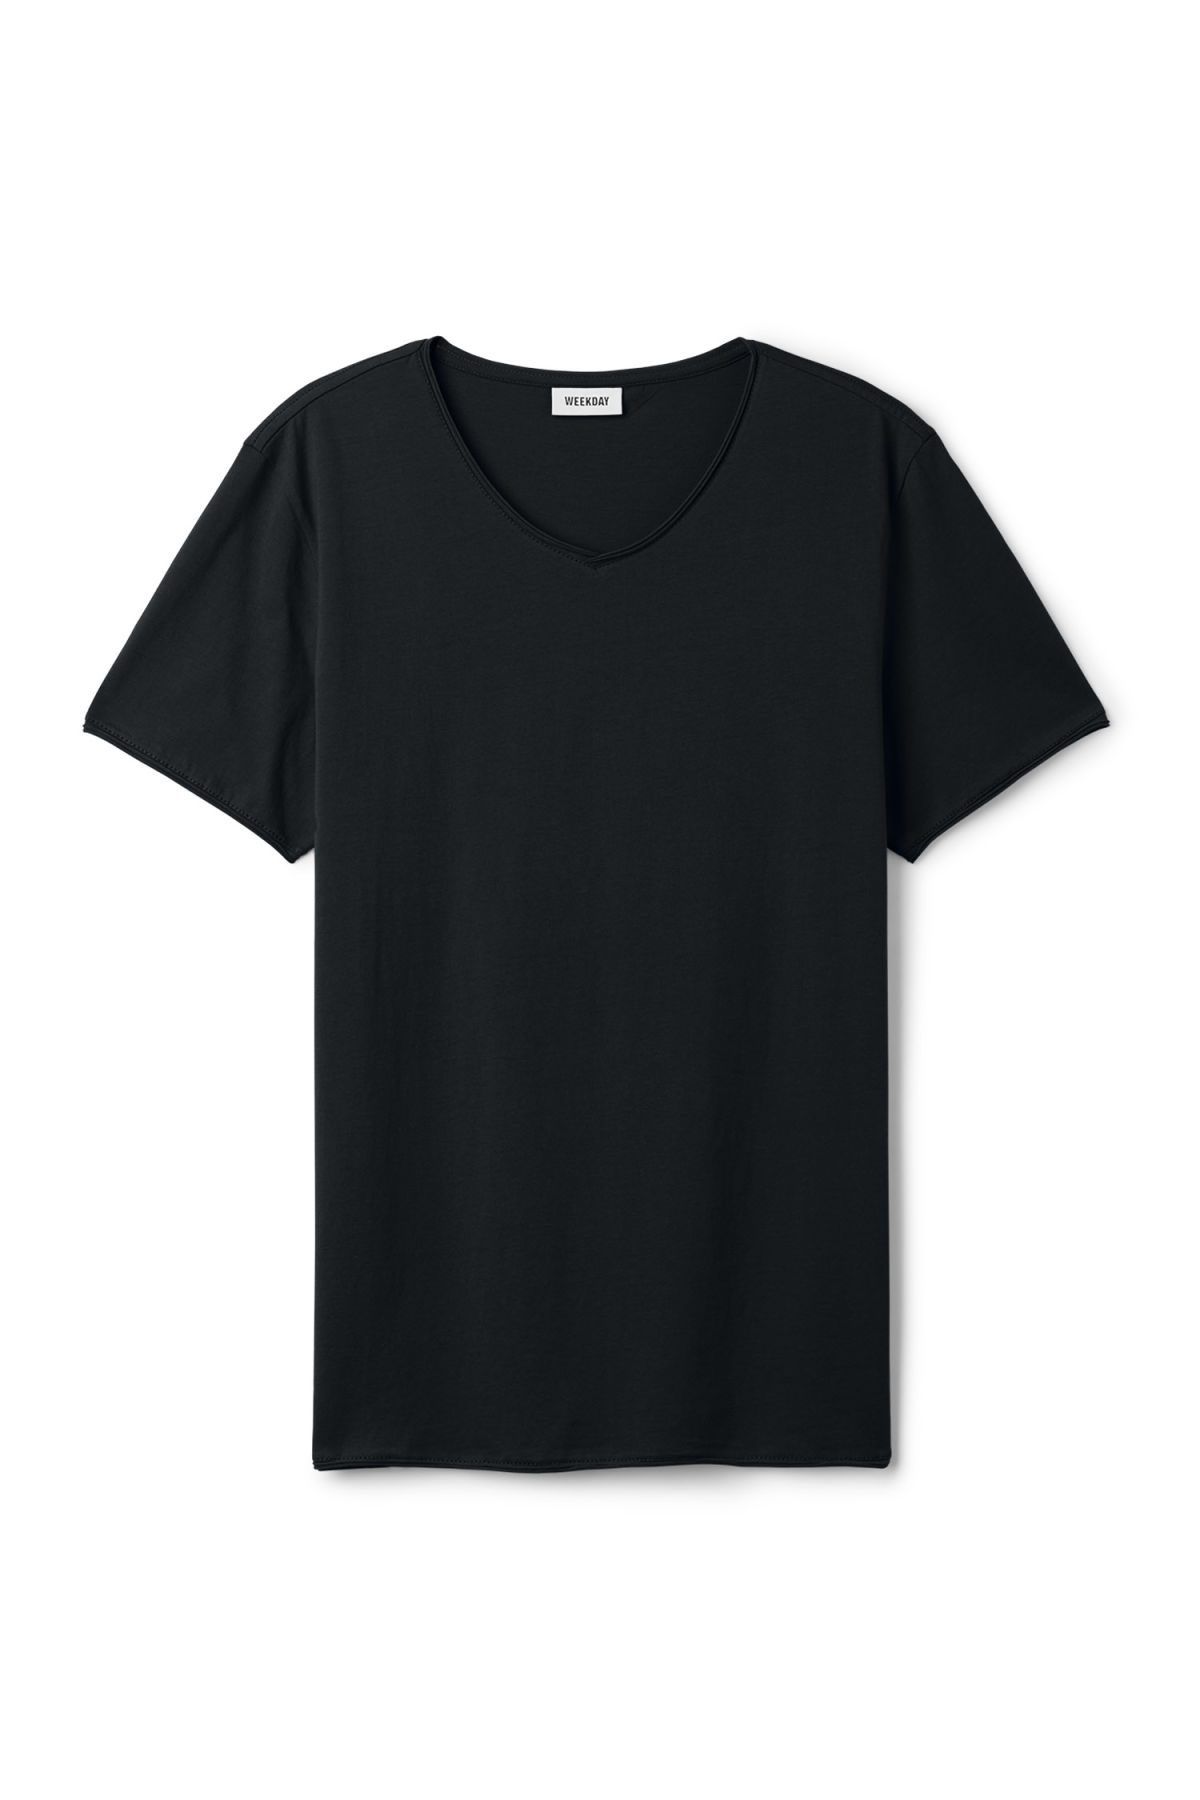 Front image of Weekday dark v-neck t-shirt in black